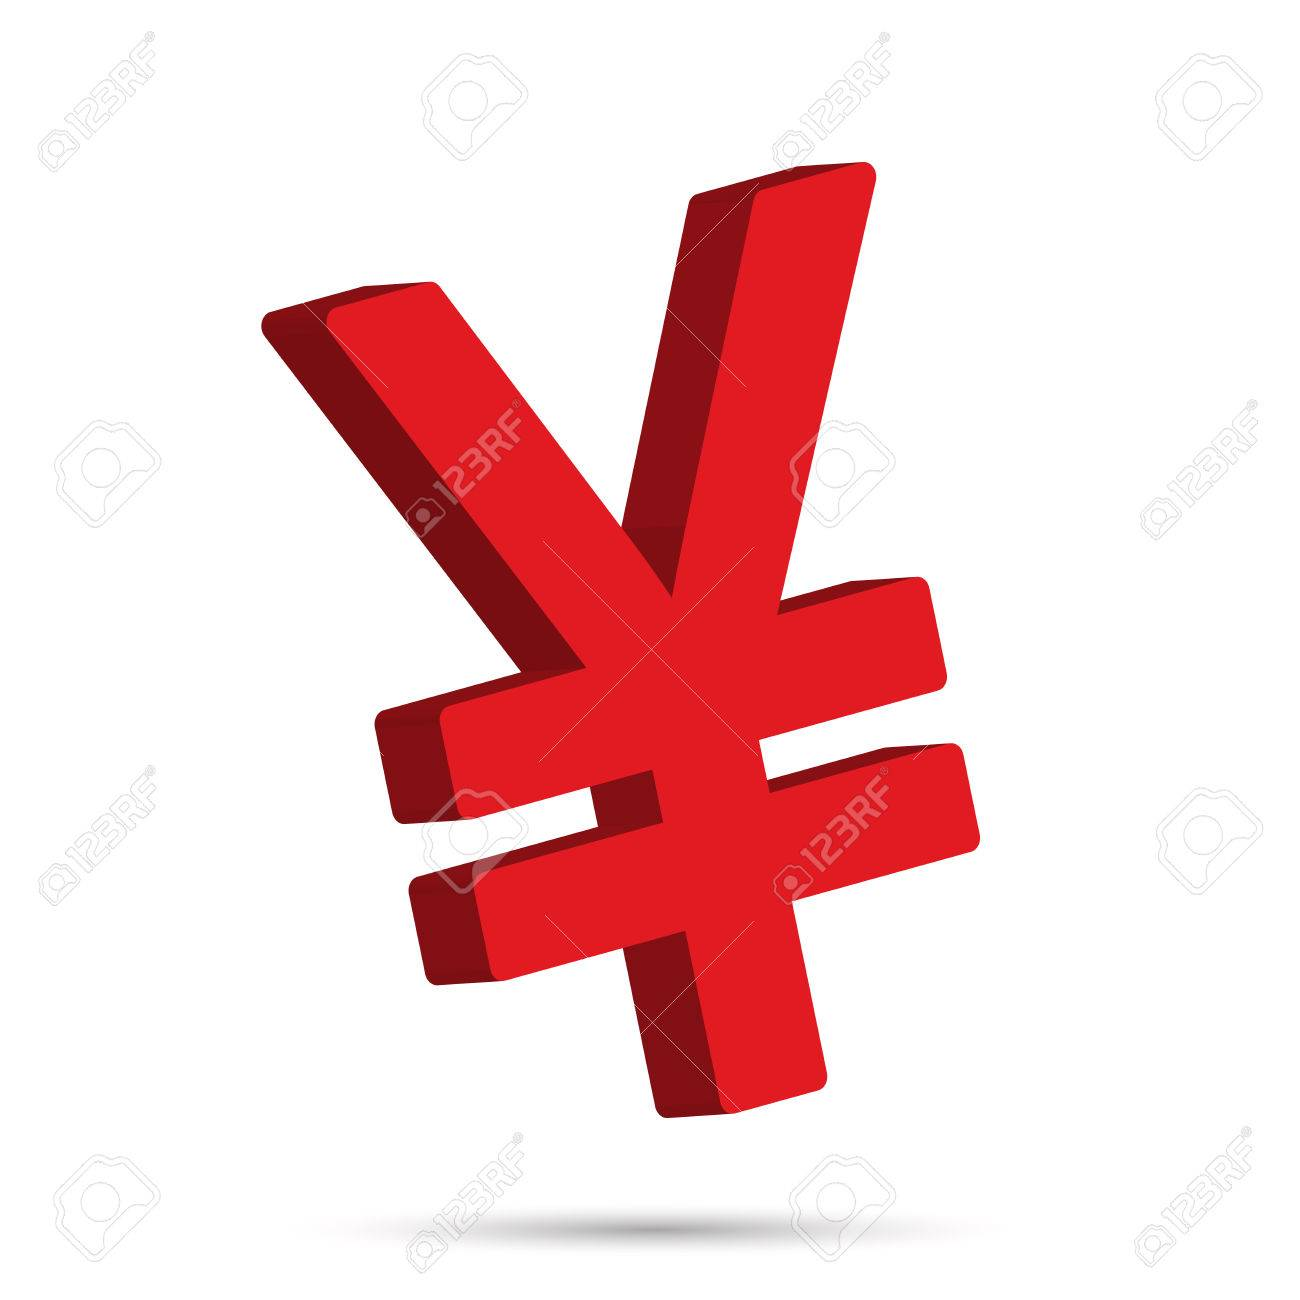 Japanese yen or chinese yuan currency symbol royalty free cliparts japanese yen or chinese yuan currency symbol stock vector 62127842 biocorpaavc